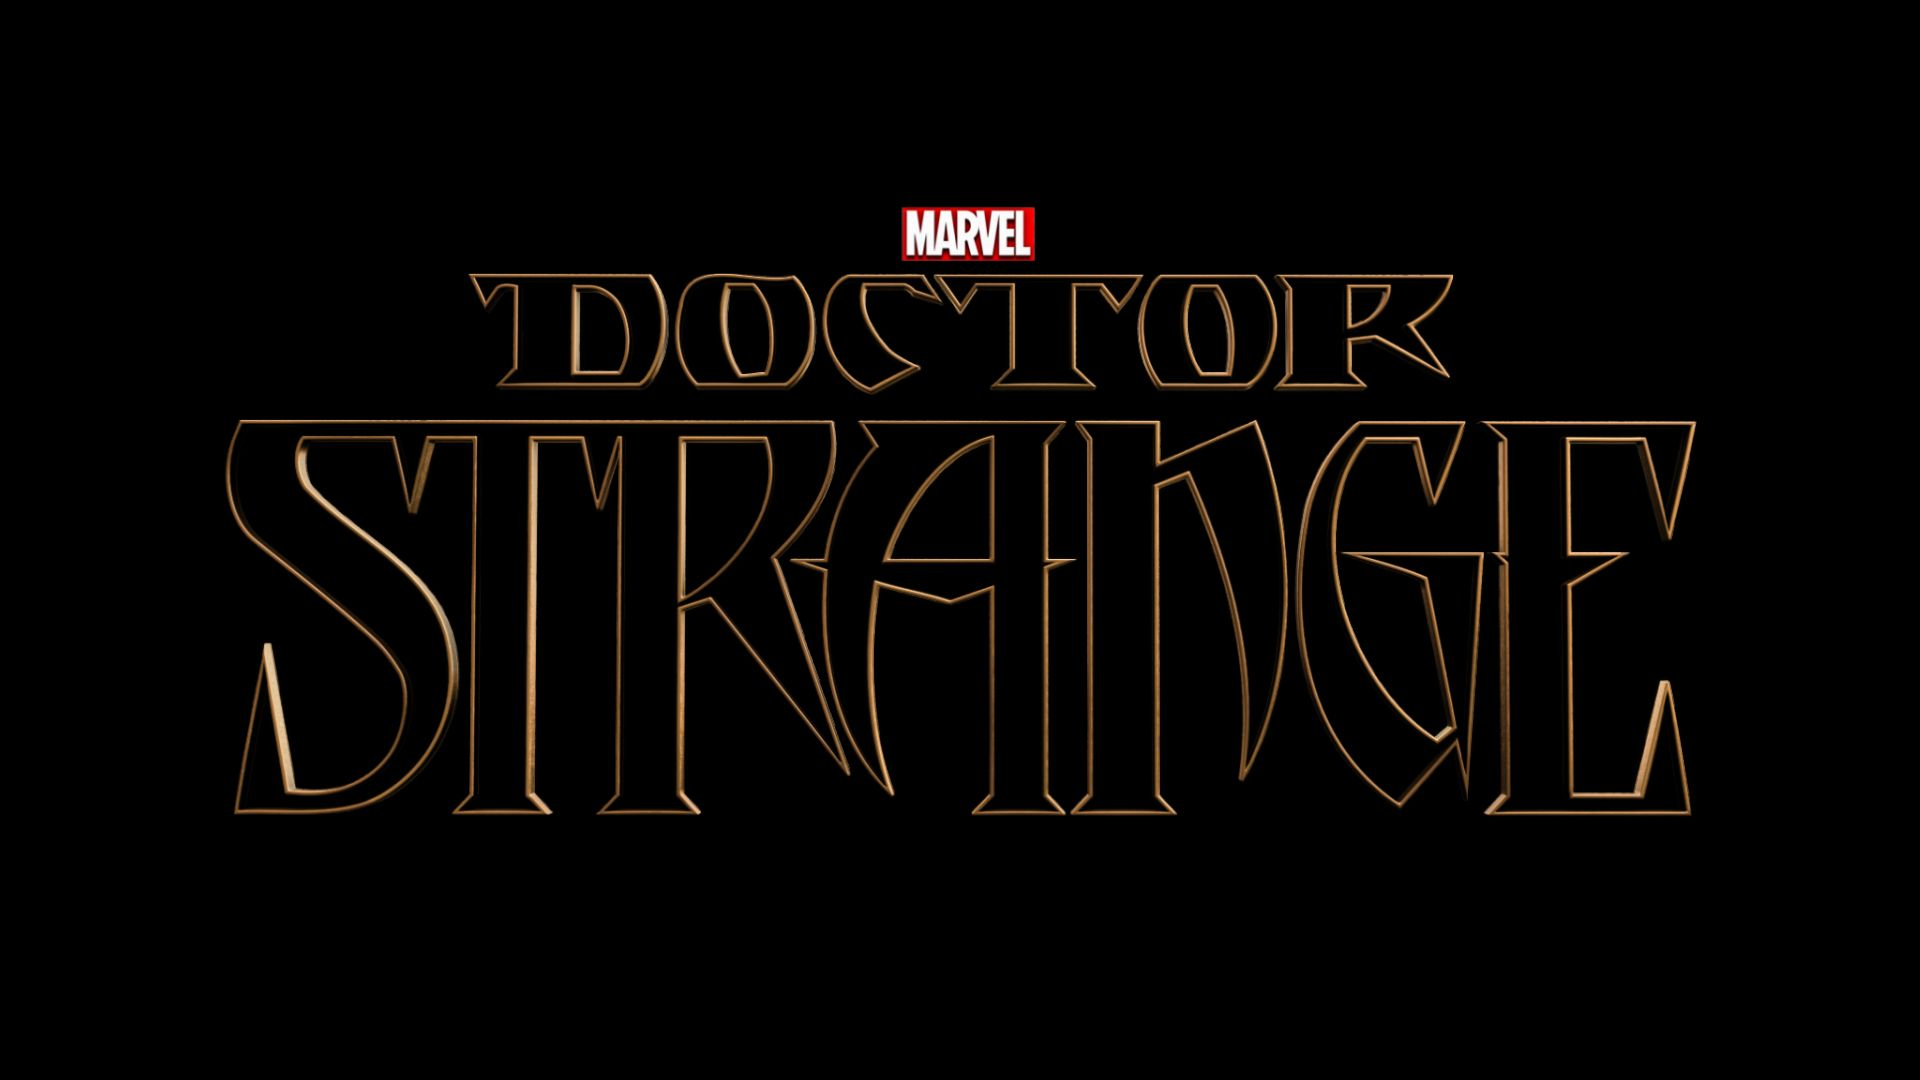 'Doctor Strange' Movie Updates: Plot, Highlight Reel Revealed At D23 Expo! - http://www.thebitbag.com/doctor-strange-movie-updates-plot-highlight-reel-revealed-at-d23-expo/114870